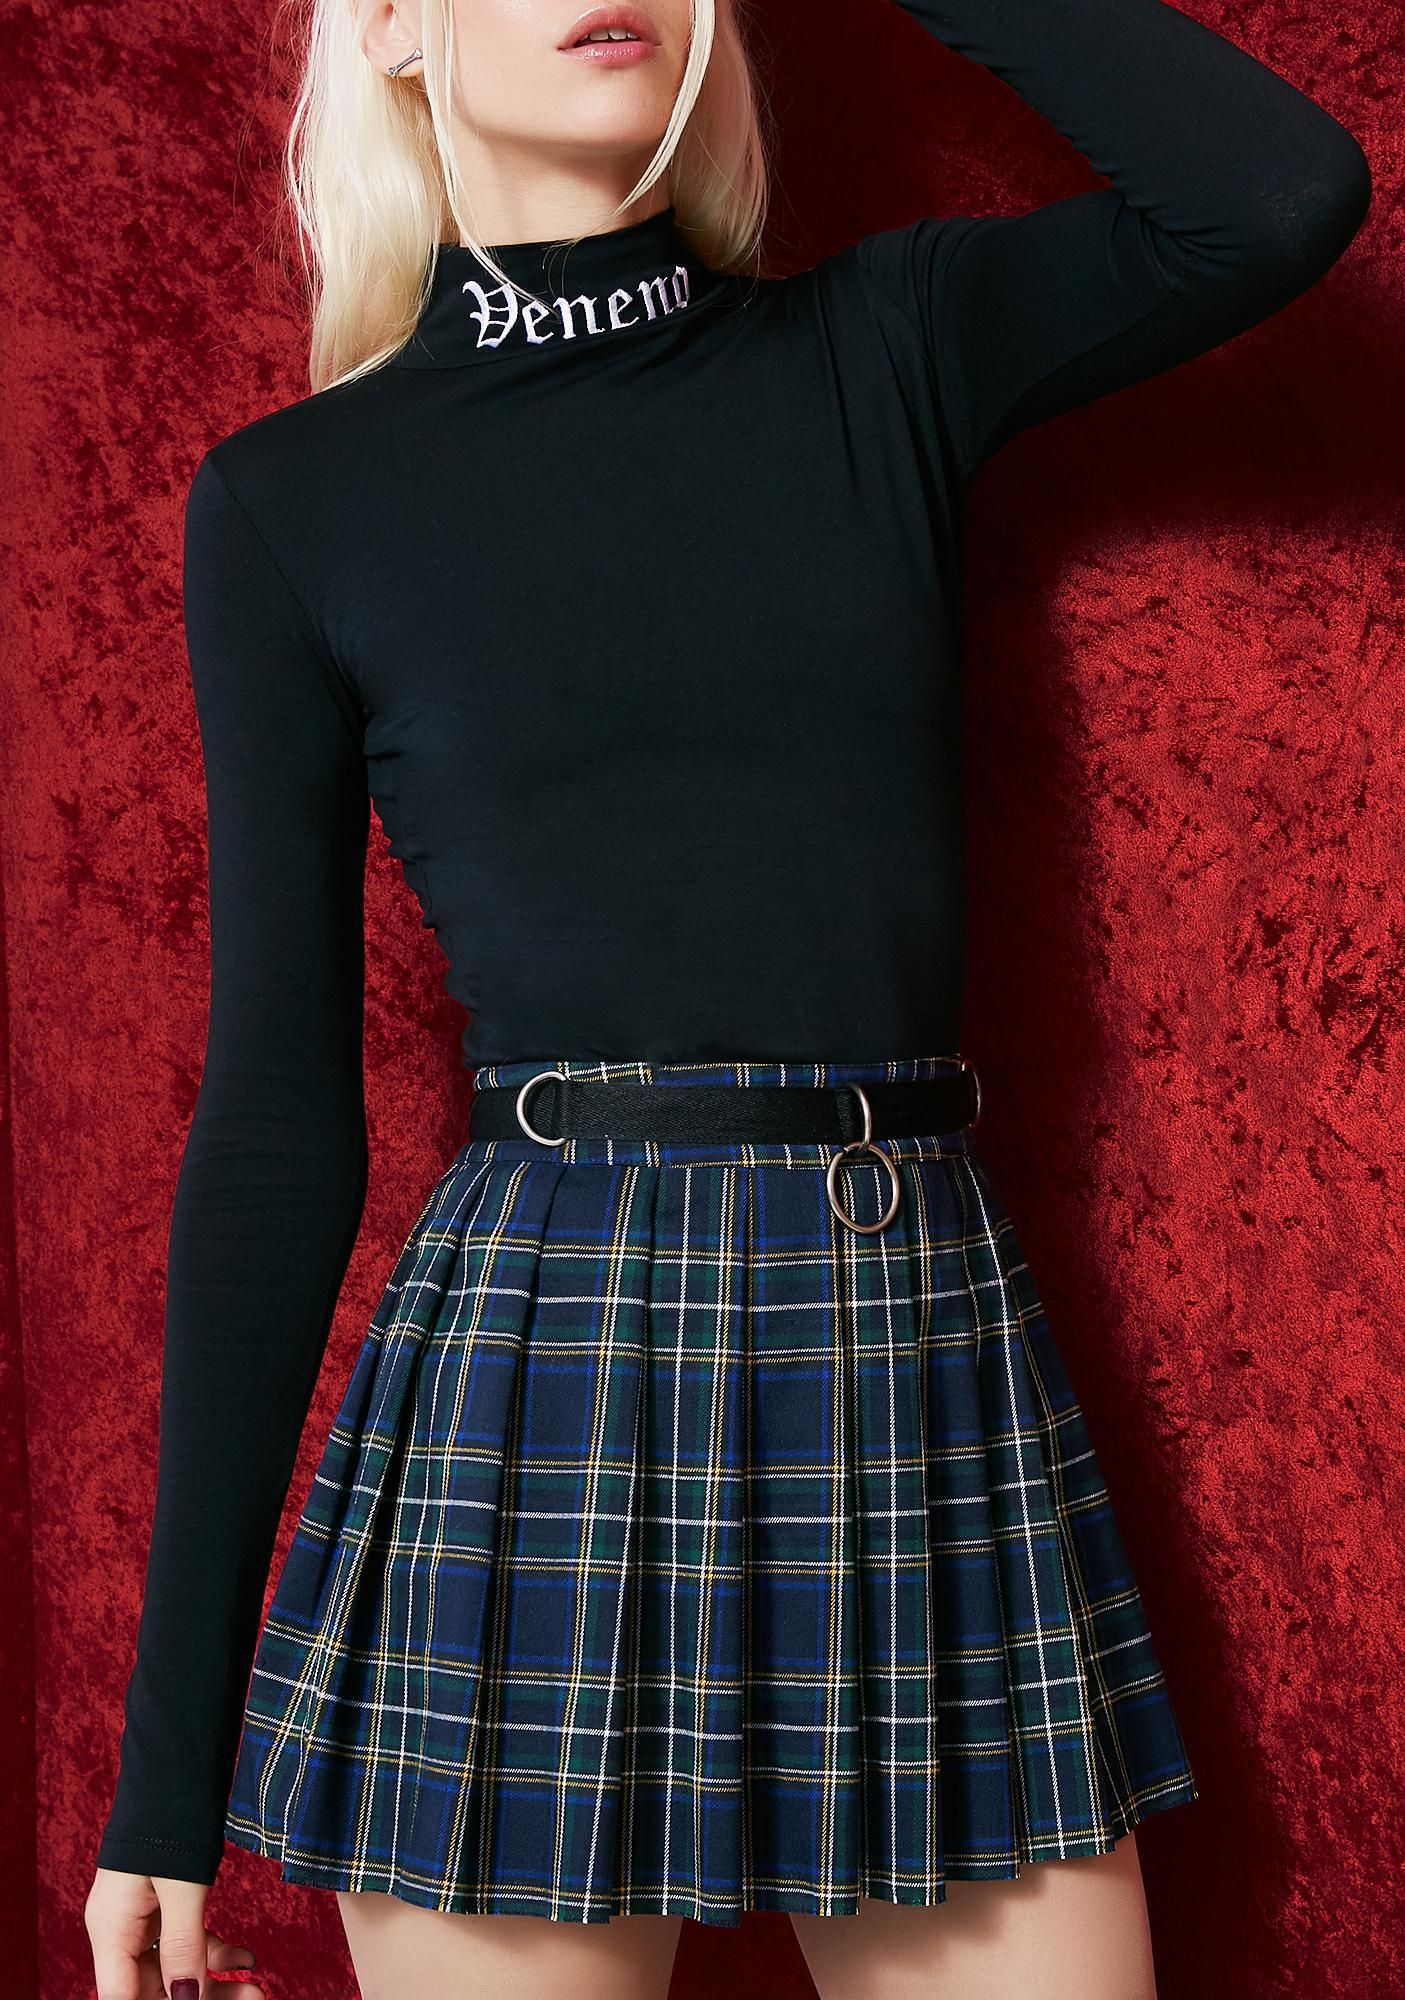 de58ef528bab6d Current Mood Dress Code Plaid Skirt hope you can keep all my dirty secrets.  This